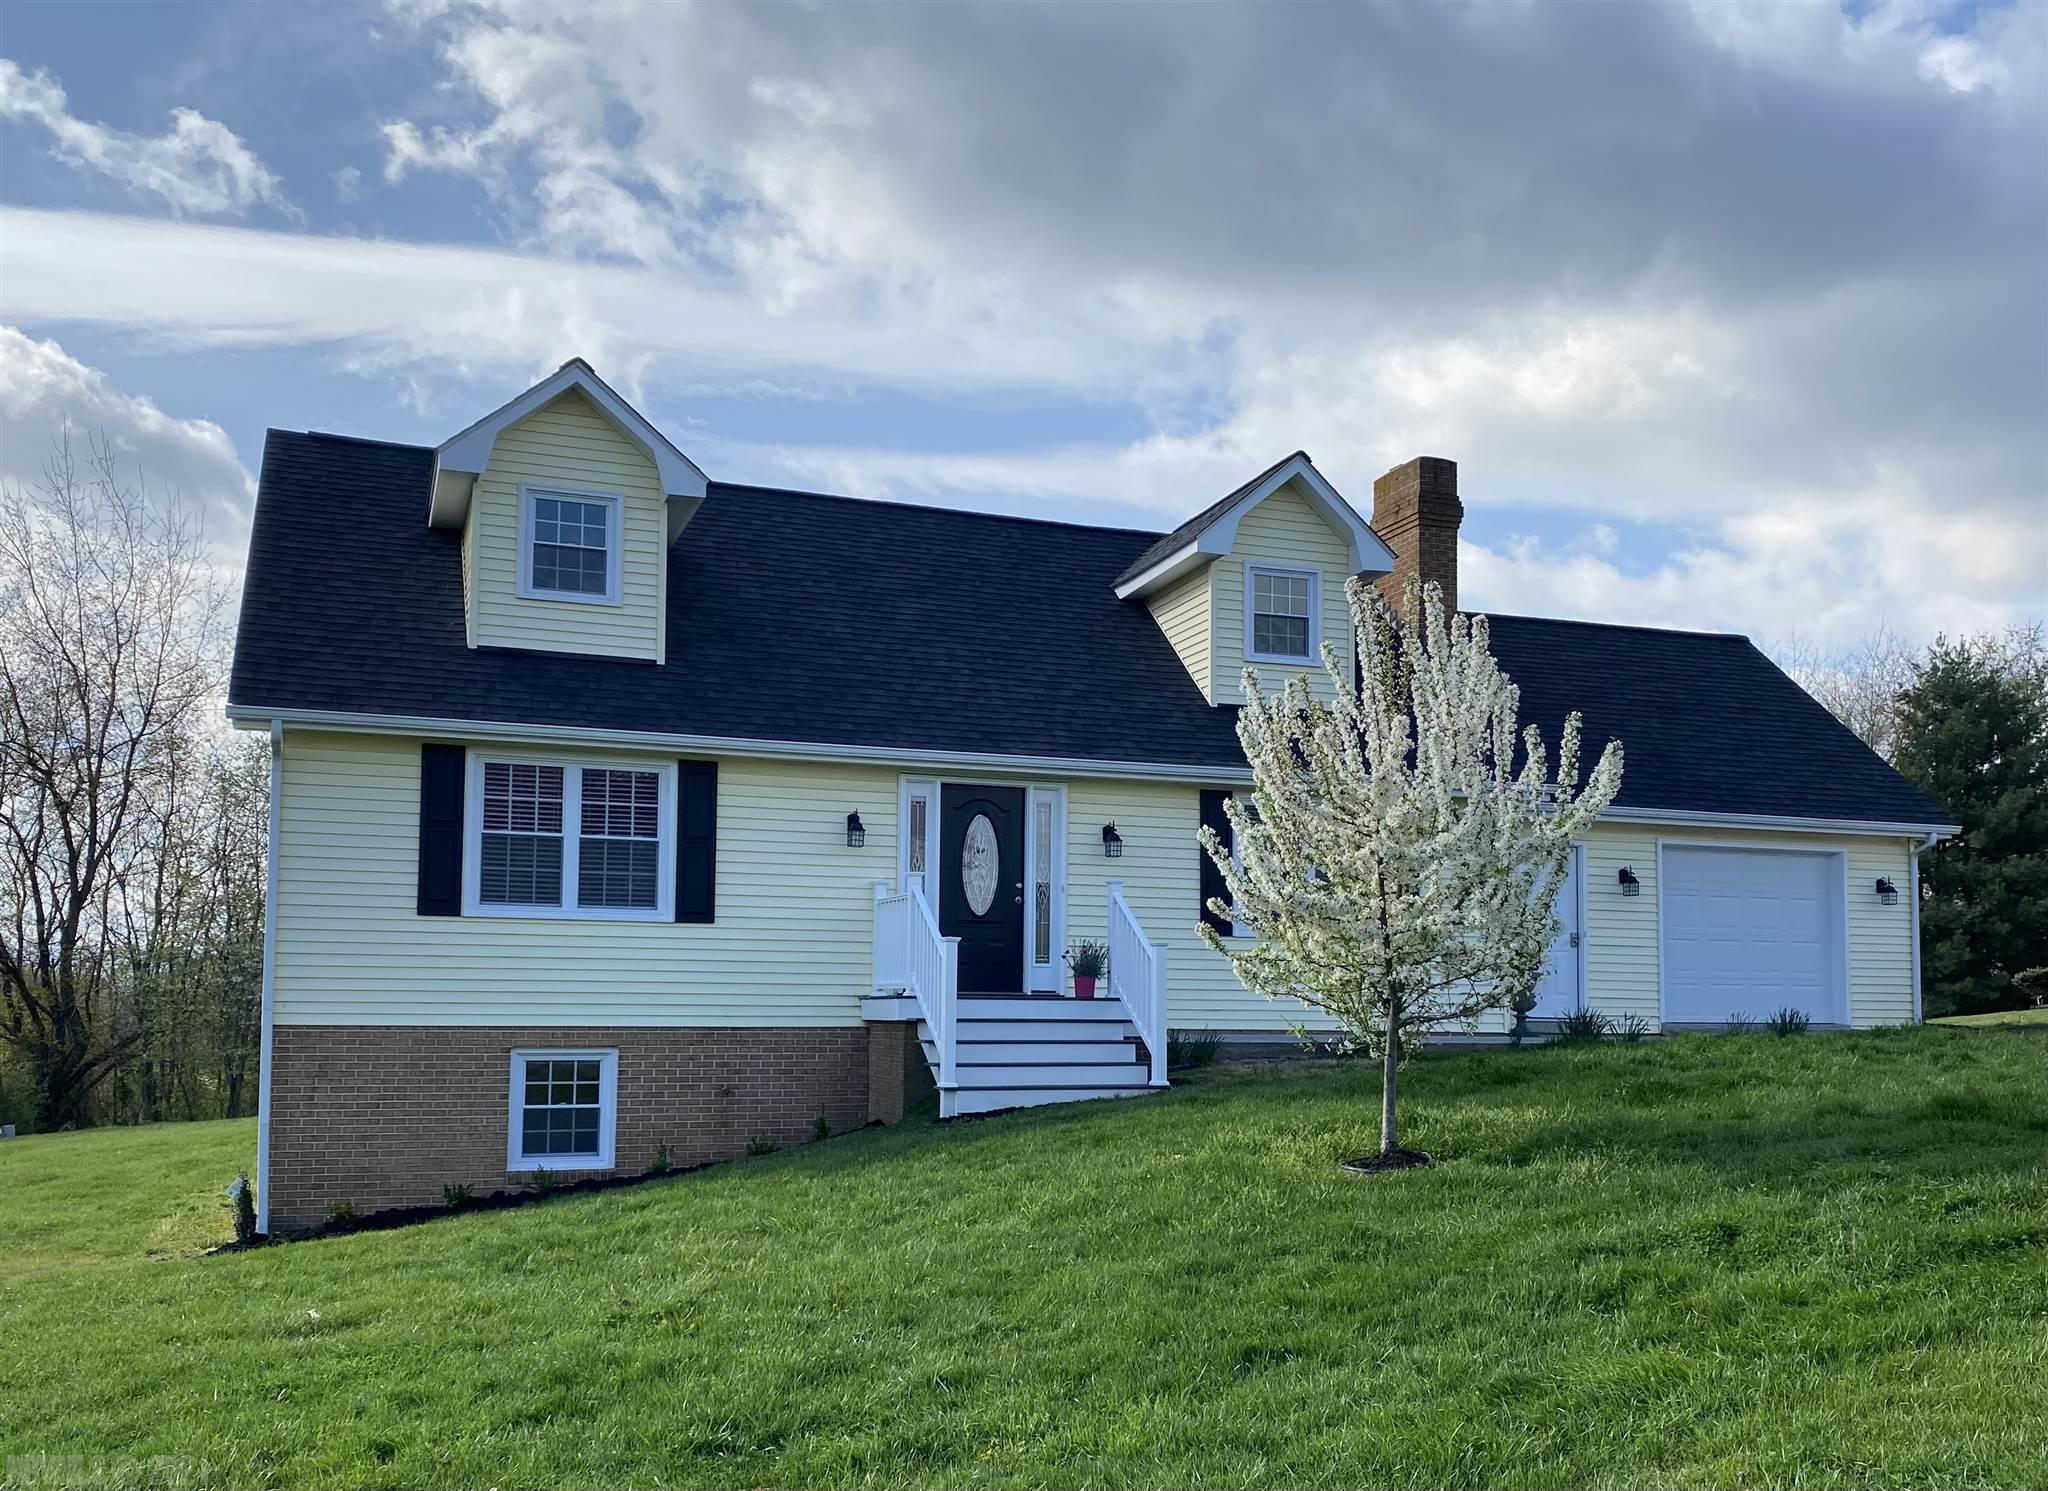 Remolded Cape Code in desirable Newbern Heights sub-division.  Close to I-81, Volvo, Walmart, Town of Pulaski and Dublin.  Home features 4 bedrooms, 3 full baths, large family/game room in the basement and 2 garages.  To many updates to list.  A must to see.